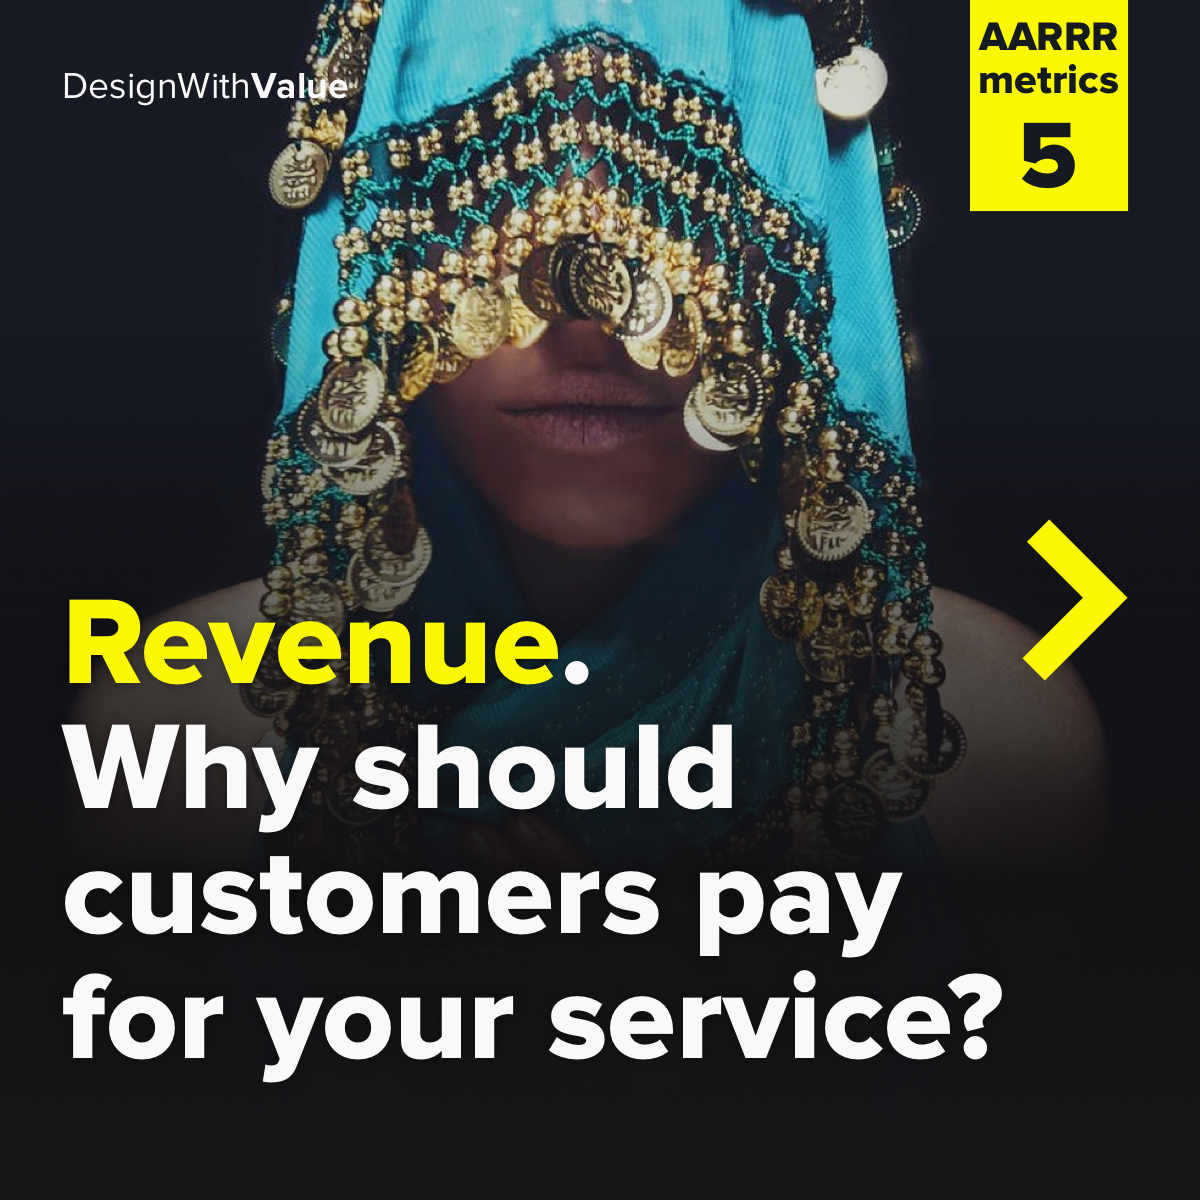 Revenue. Why should customers pay for your service?